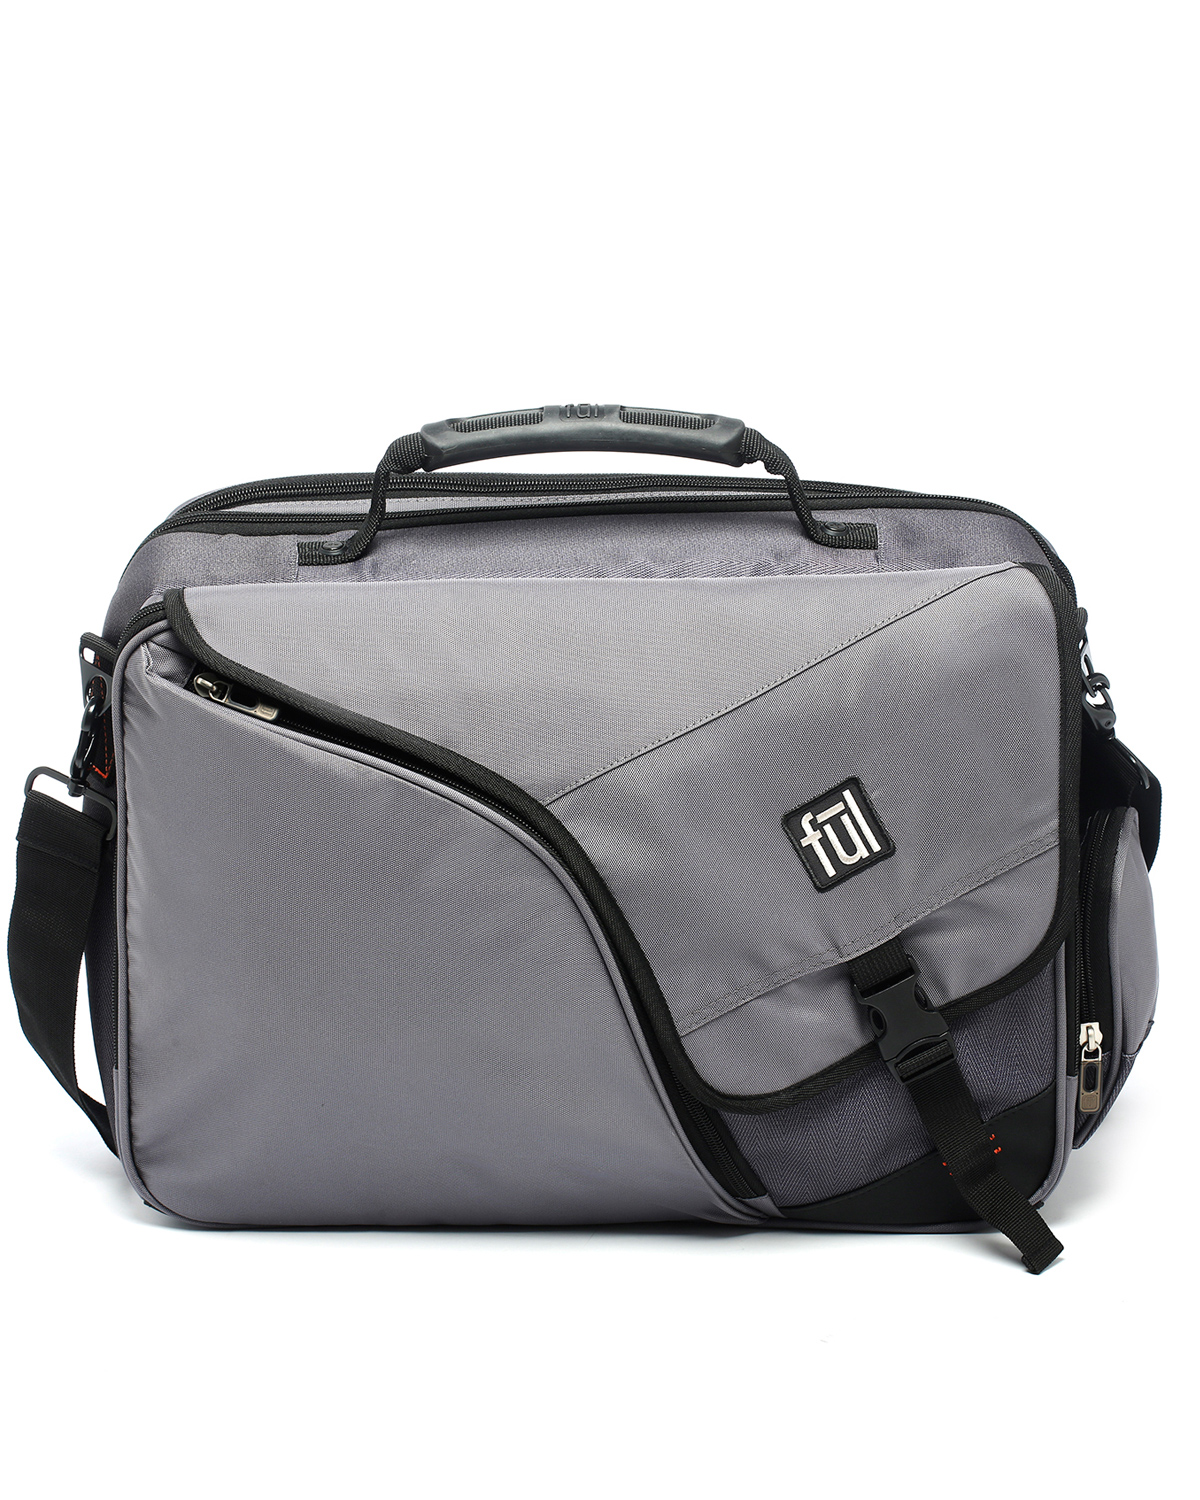 FUL BD6064 - Mission Series Head Honcho Messenger